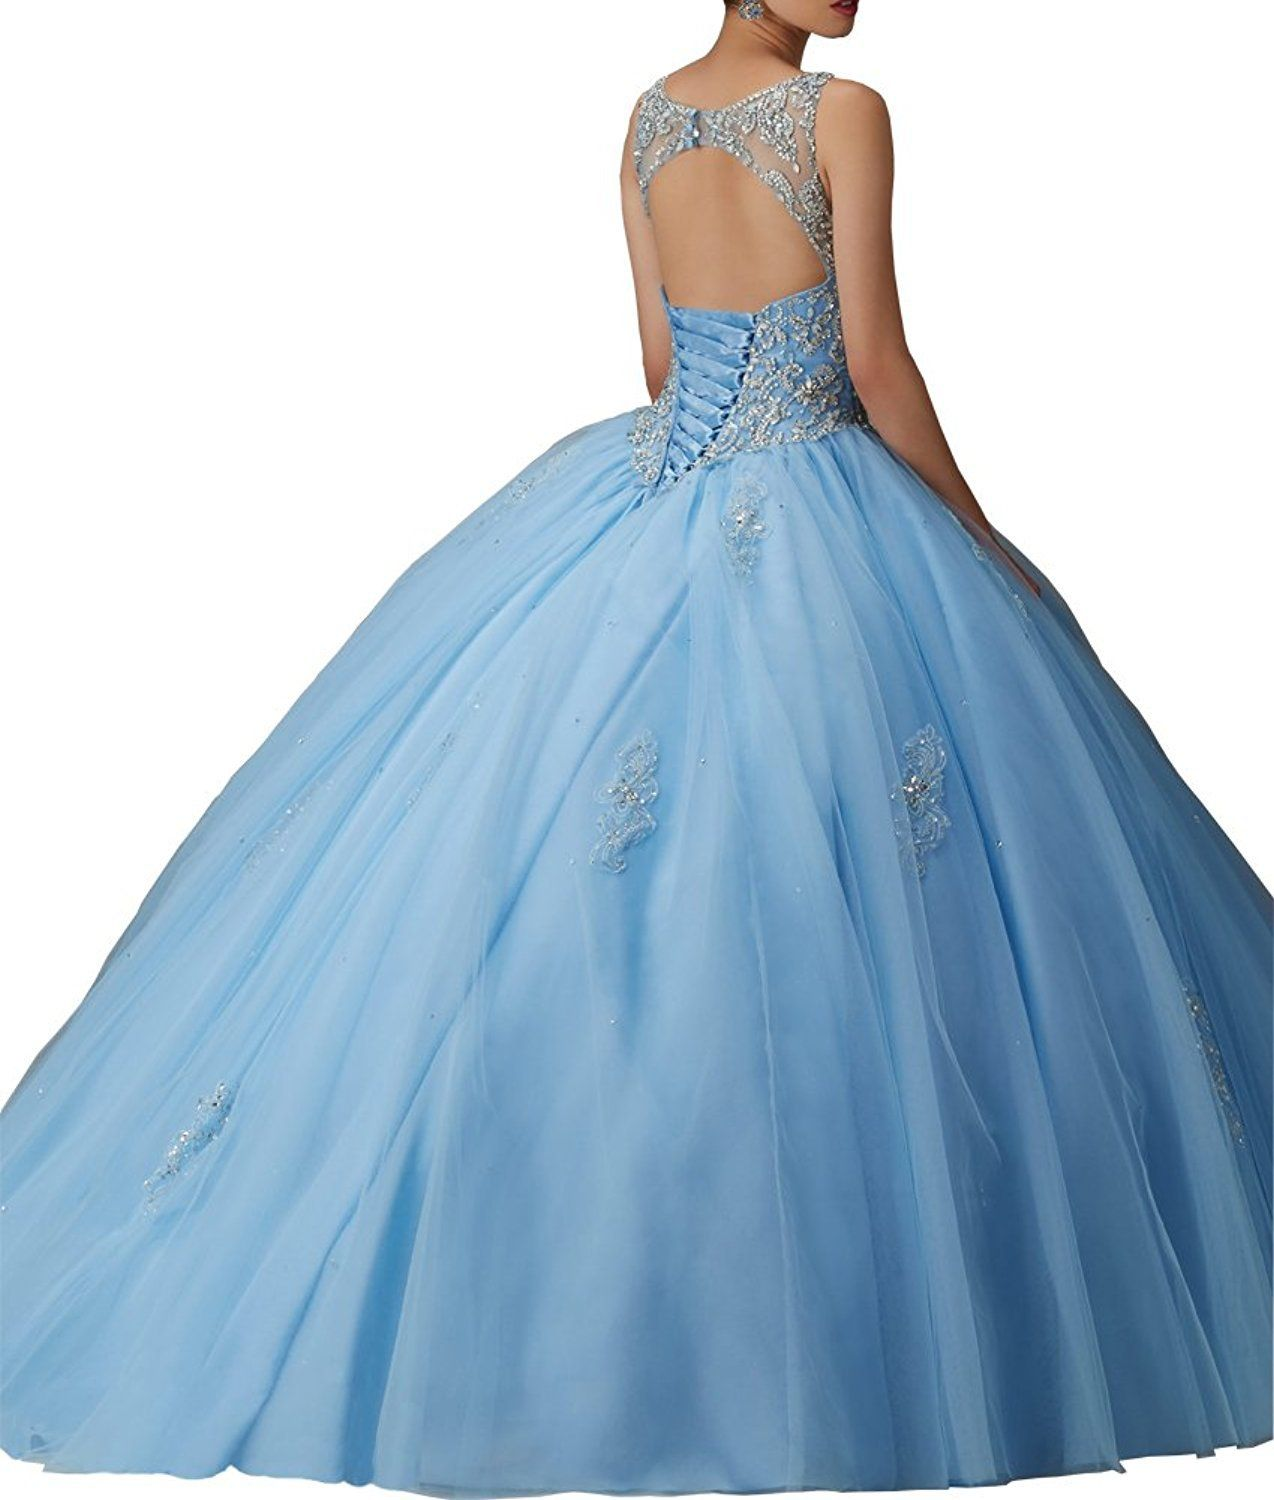 Xswpl Girls Sweet 16 Birthday Party Dress Ball Gown Beads Prom Quinceanera Dresses 2018 Champagne Us8 You Could Obtai Ball Dresses Girls Ball Gown Ball Gowns [ 1500 x 1274 Pixel ]